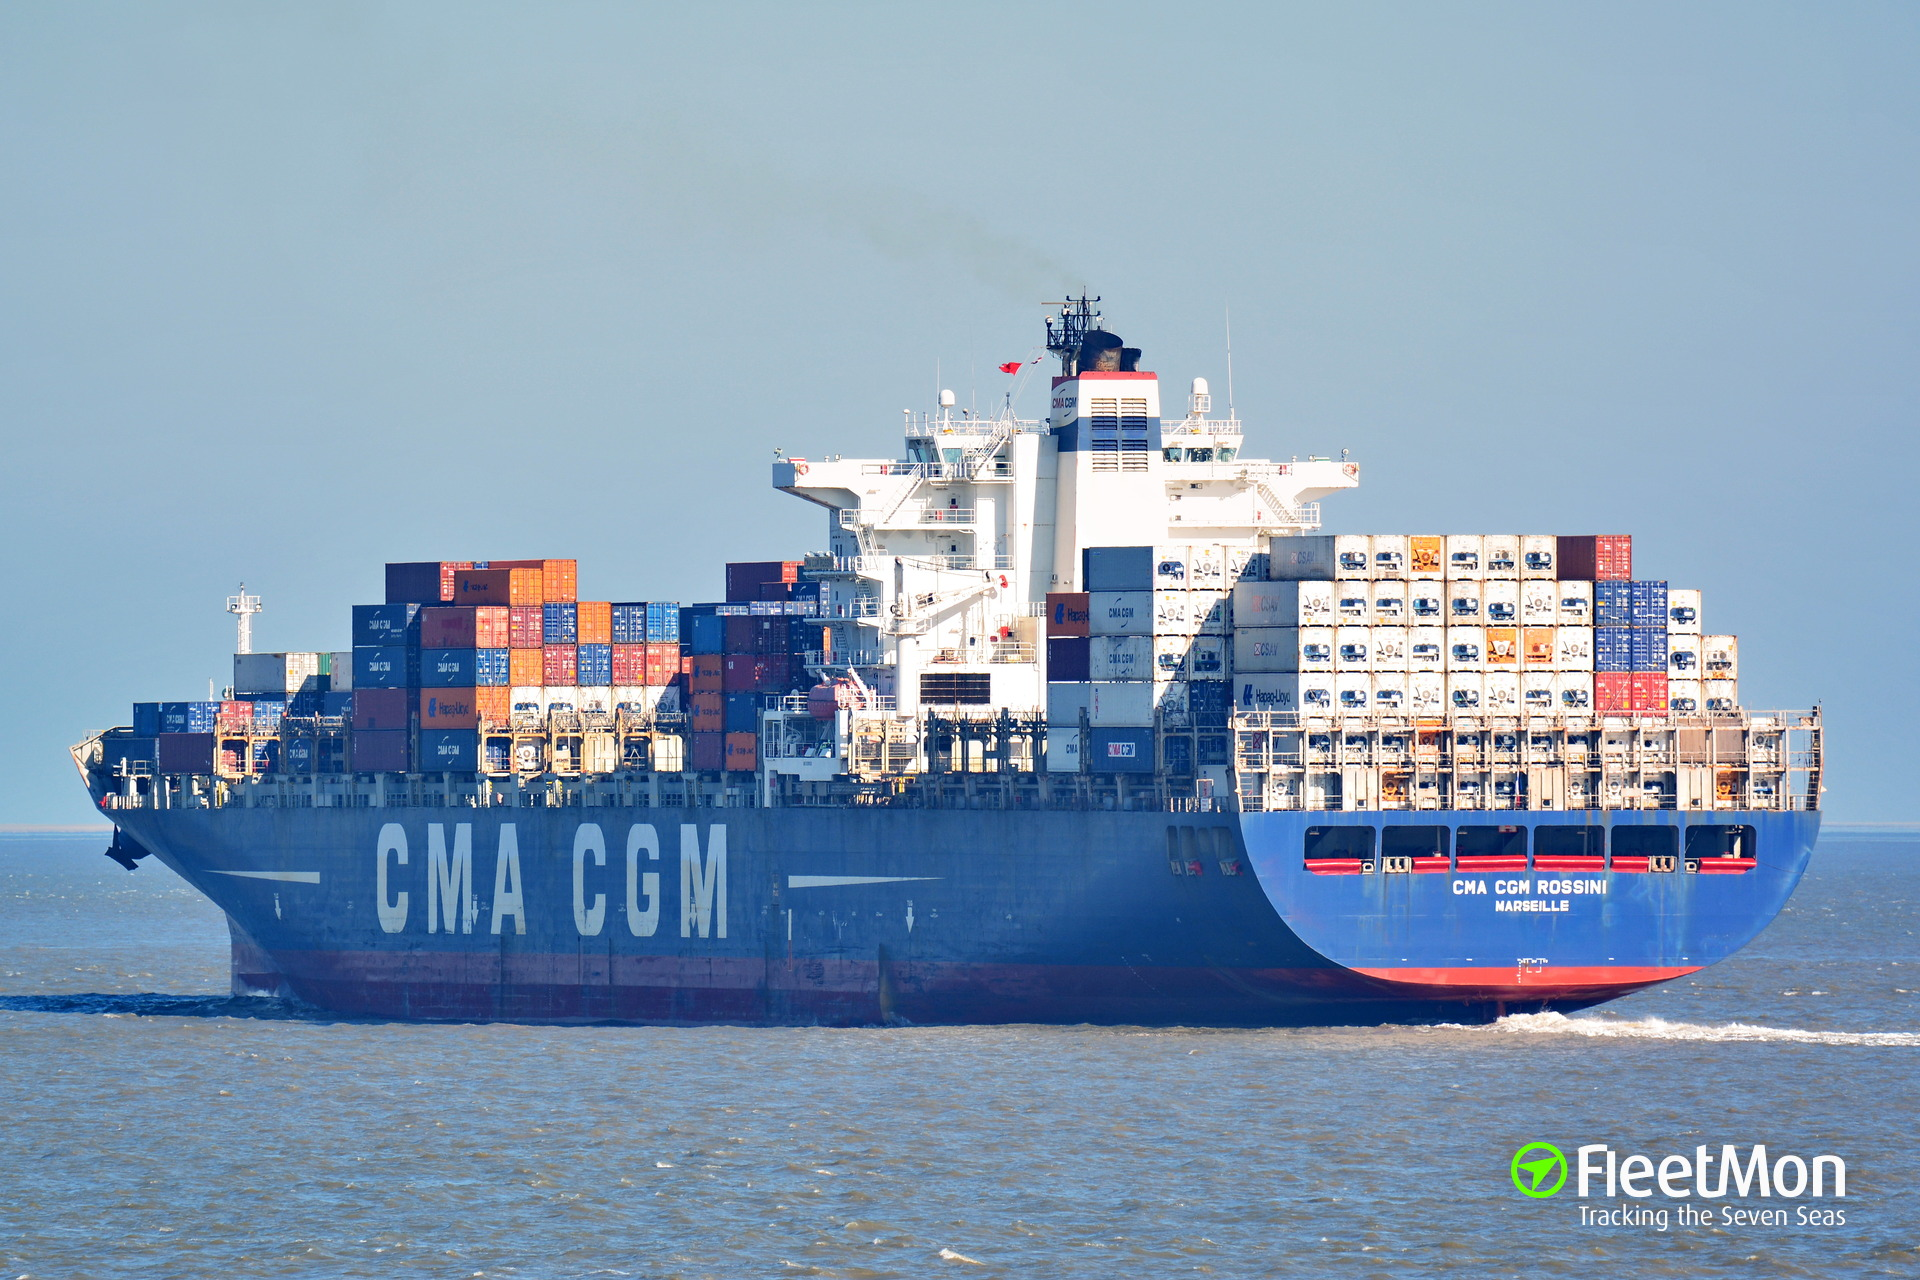 Container ship CMA CGM Rossini lost 14 containers, English Channel